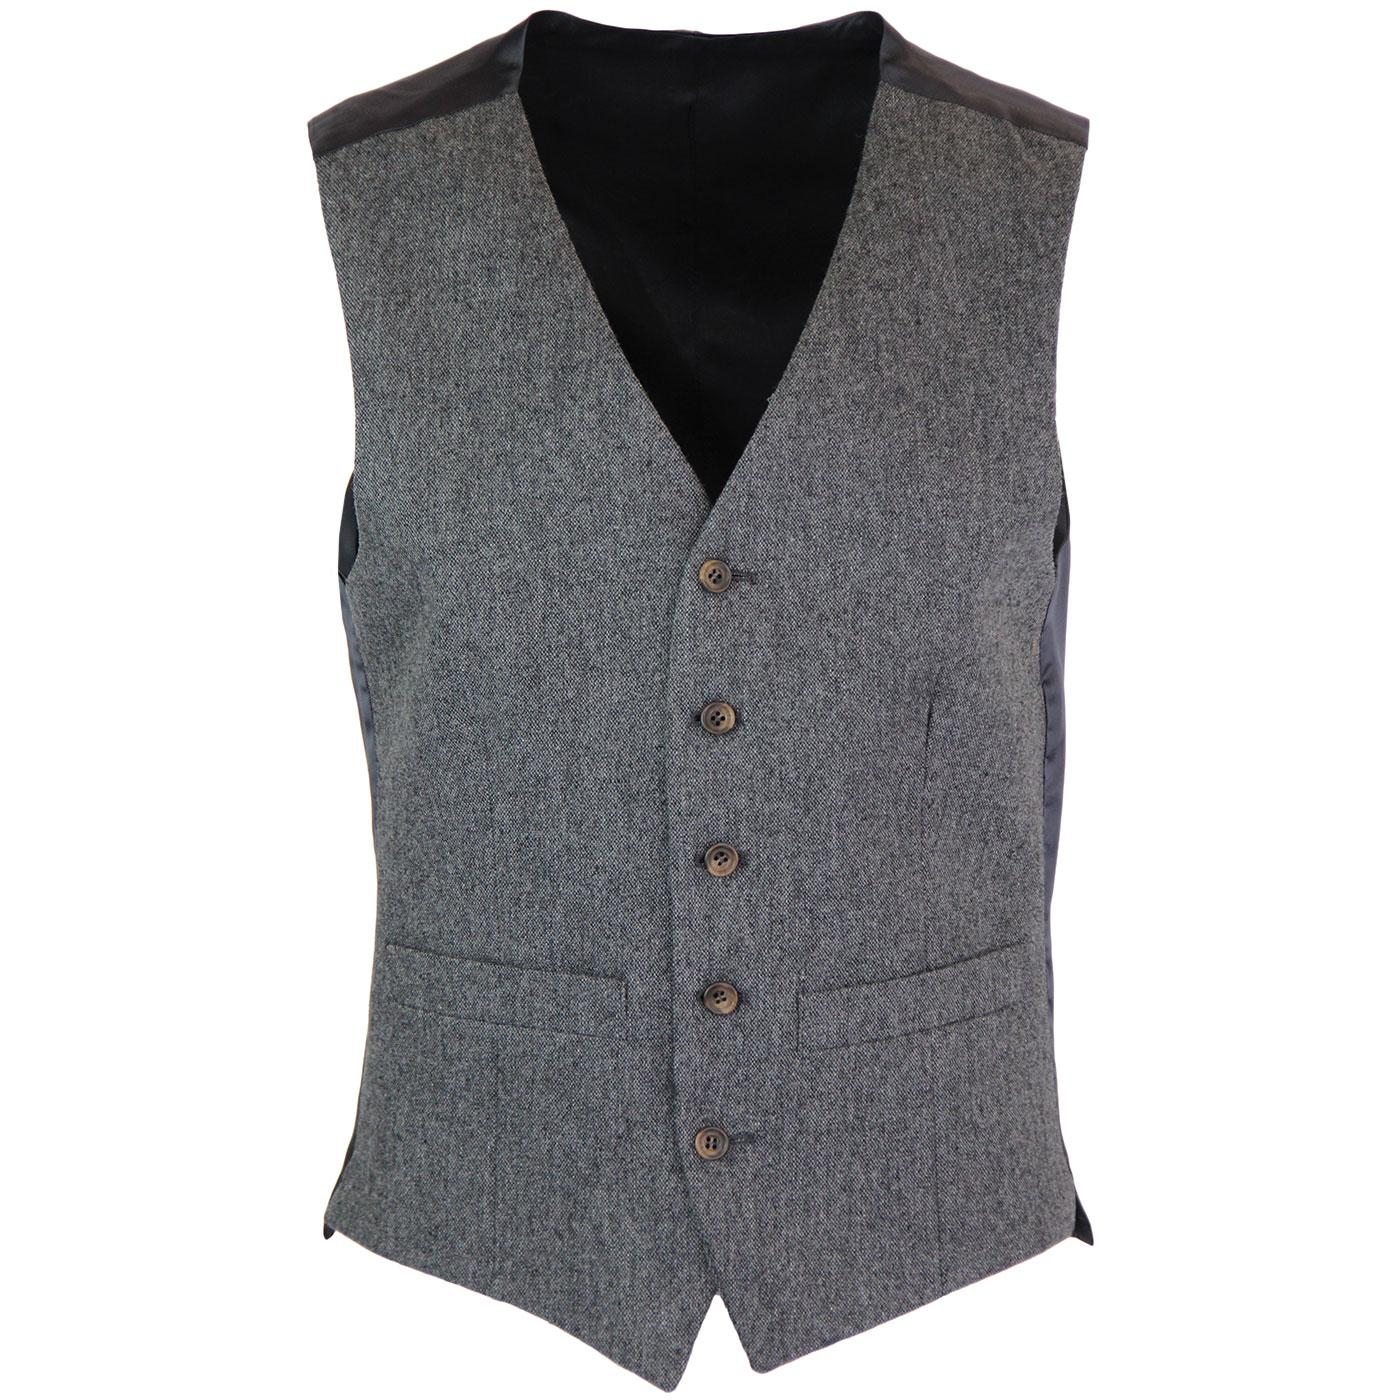 Men's 60s Mod Donegal V-Neck Waistcoat (Charcoal)